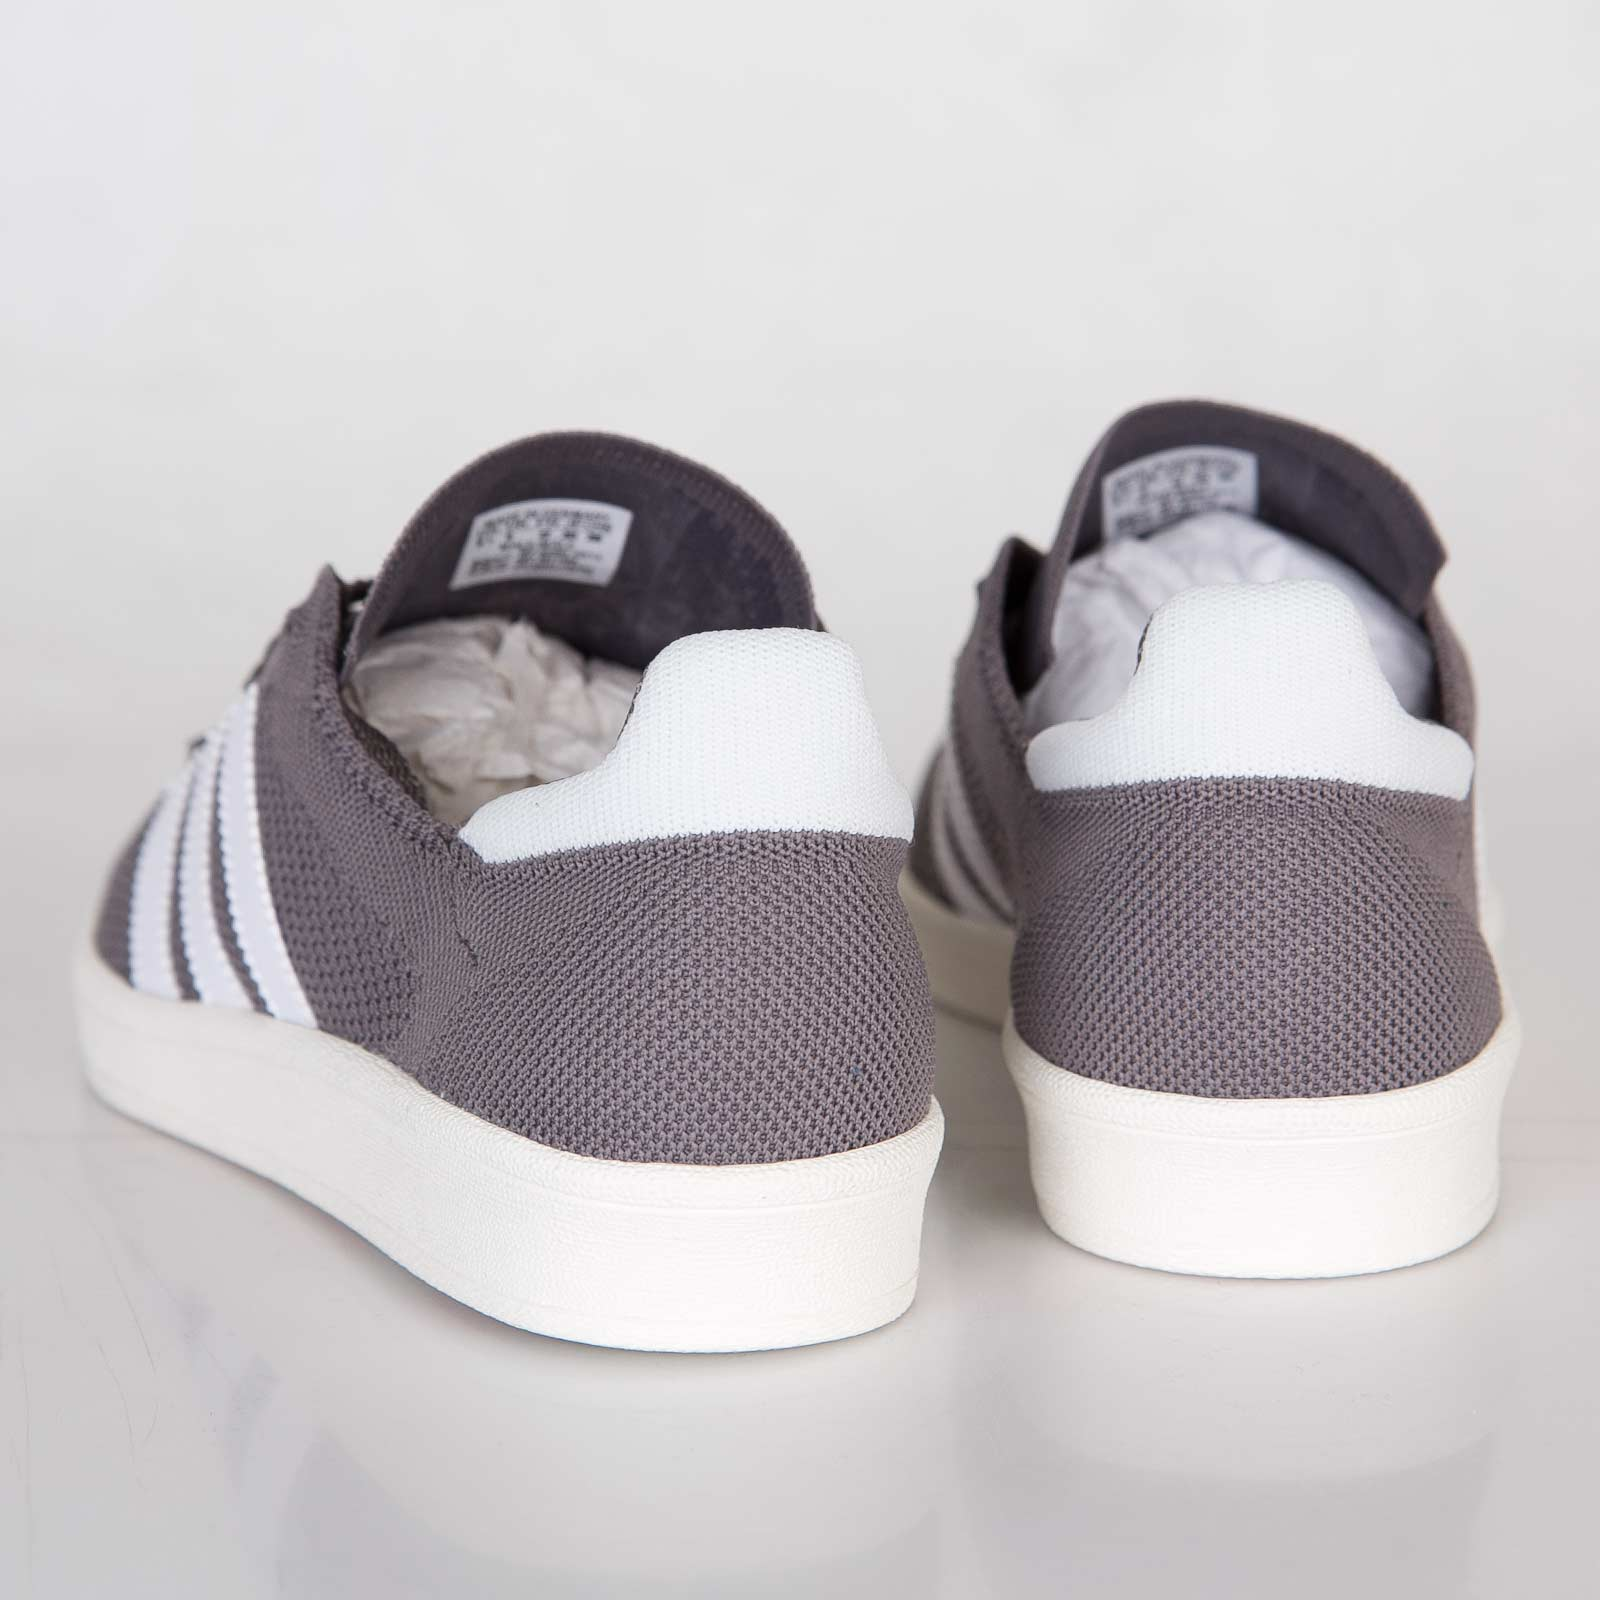 new product 35228 a4216 ... adidas Campus 80s - PRIMEKNIT ...